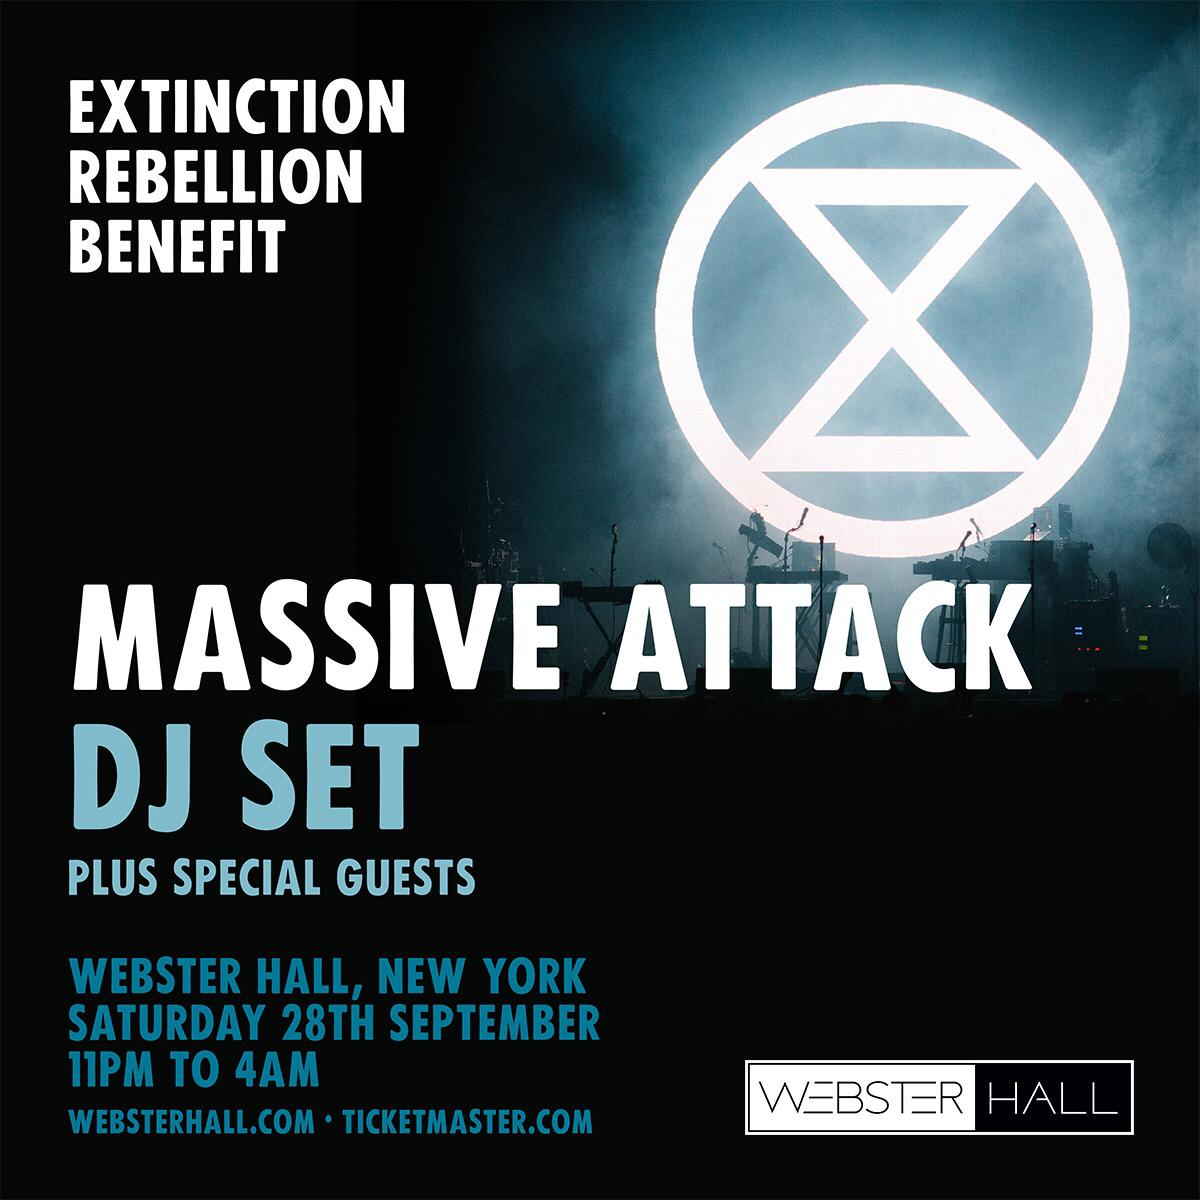 Multi award winning British artists Massive Attack playing a one-off show at the historic Webster Hall NYC, in support of @XR_NYC & Oct #internationalrebellion - expect very special guests & an unforgettable night. All proceeds to XR.